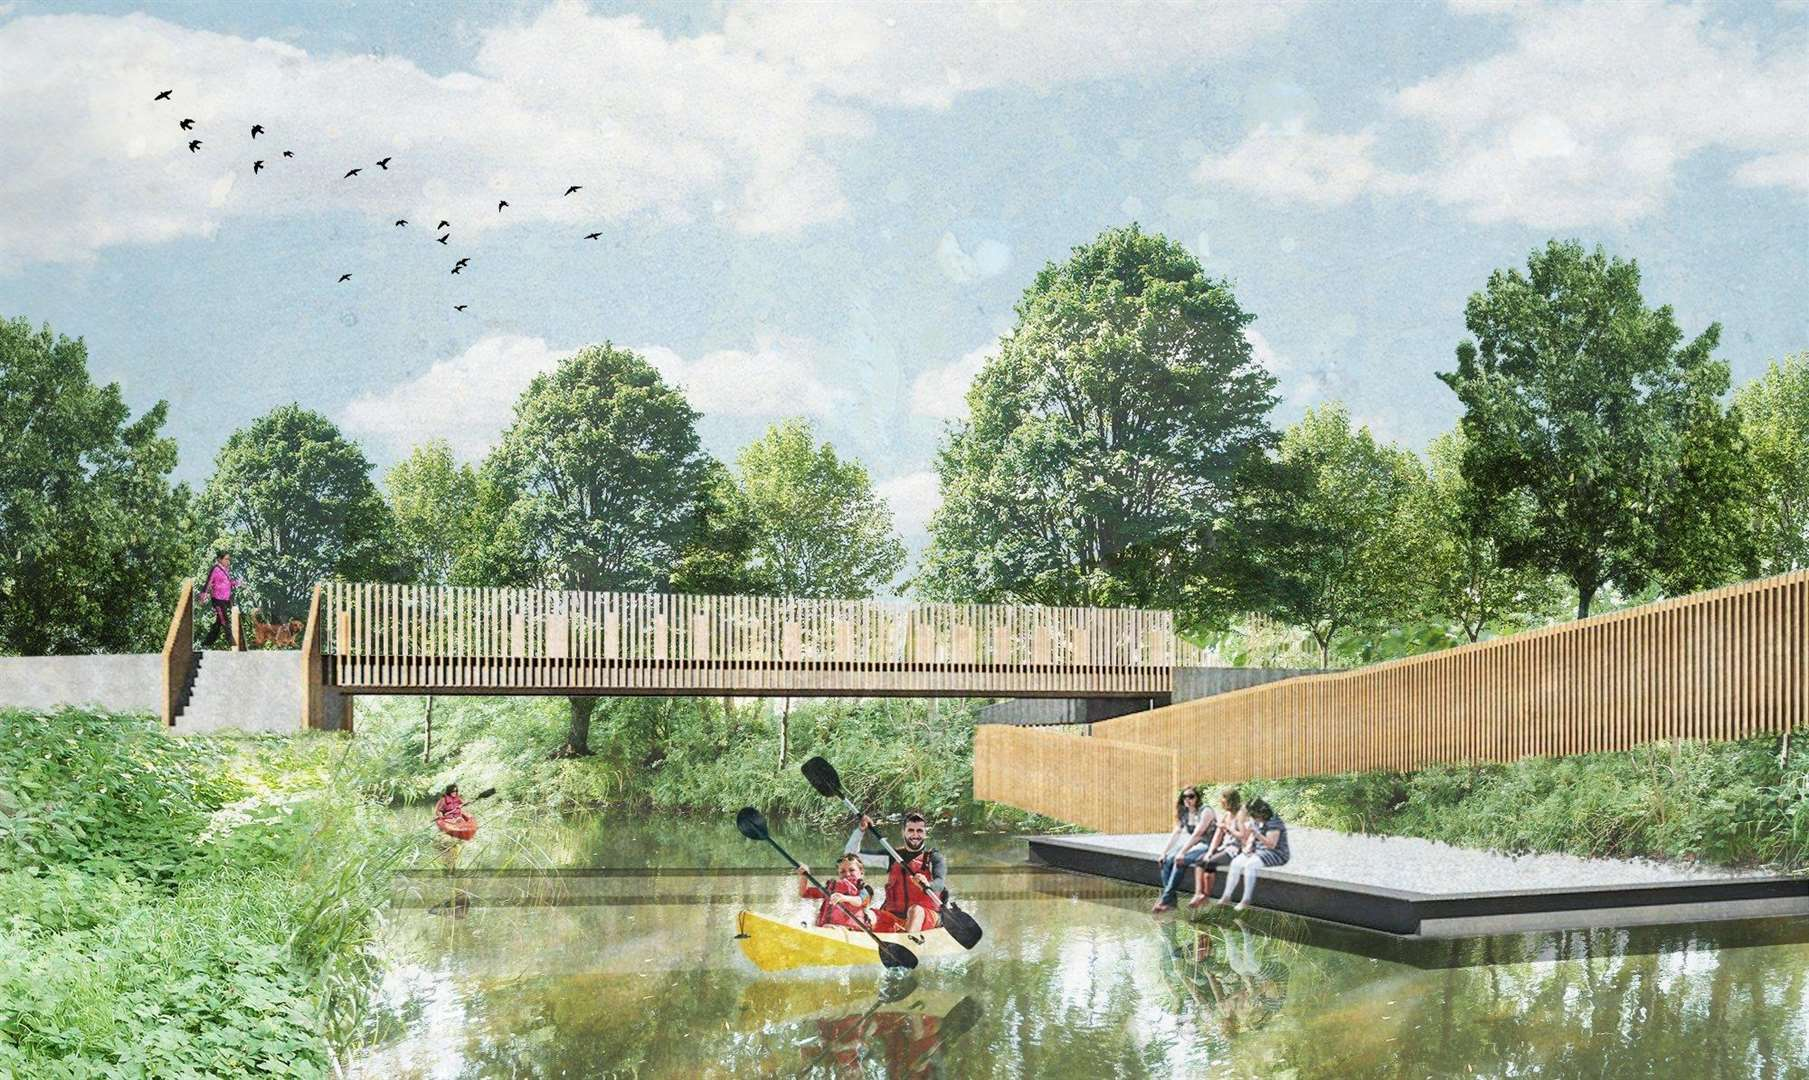 Transformation plans for Castle Park in Bishop's Stortford. (7089123)